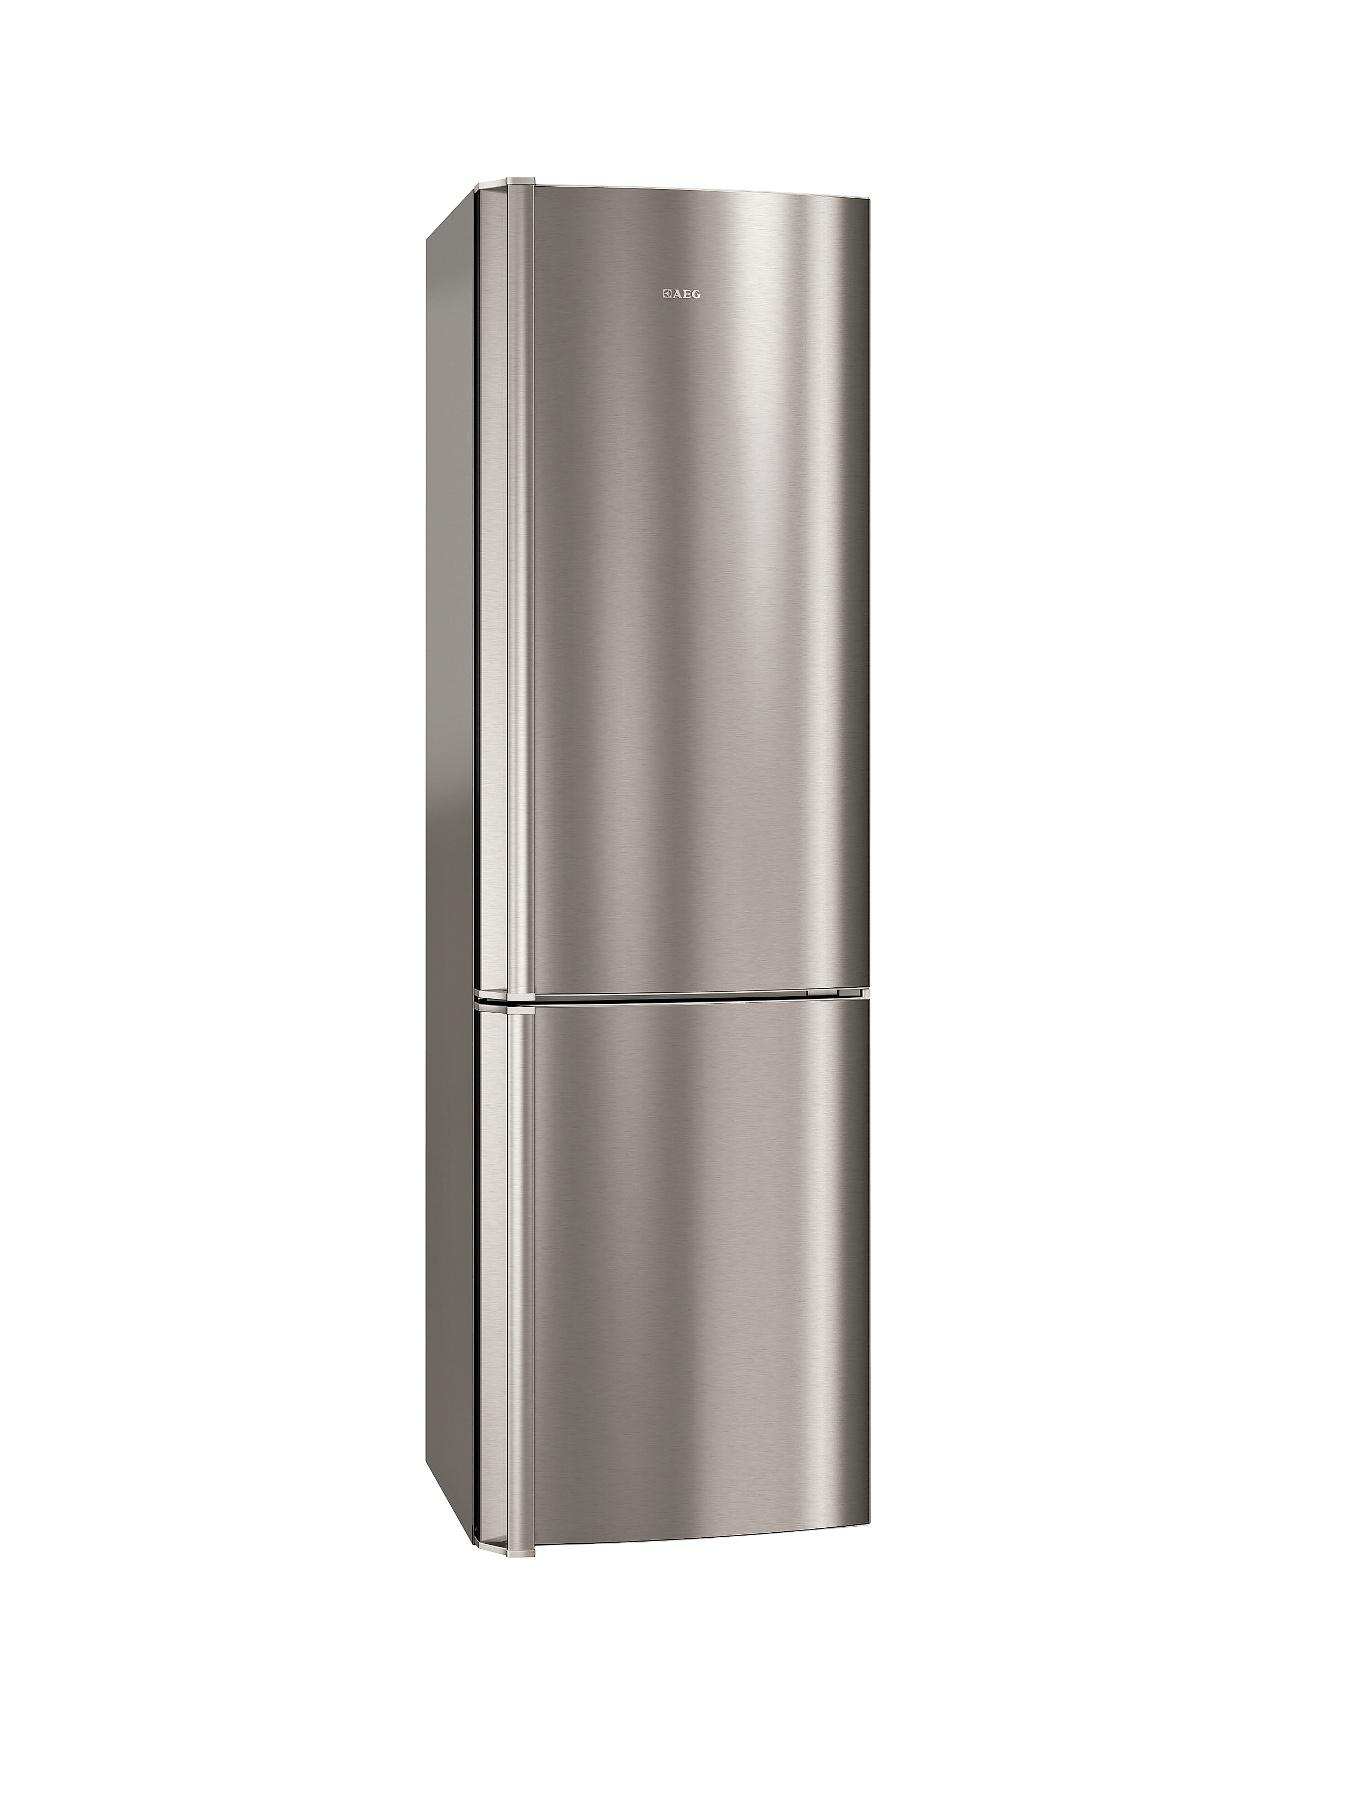 AEG S83420CTX2 Frost Free Fridge Freezer - Stainless Steel